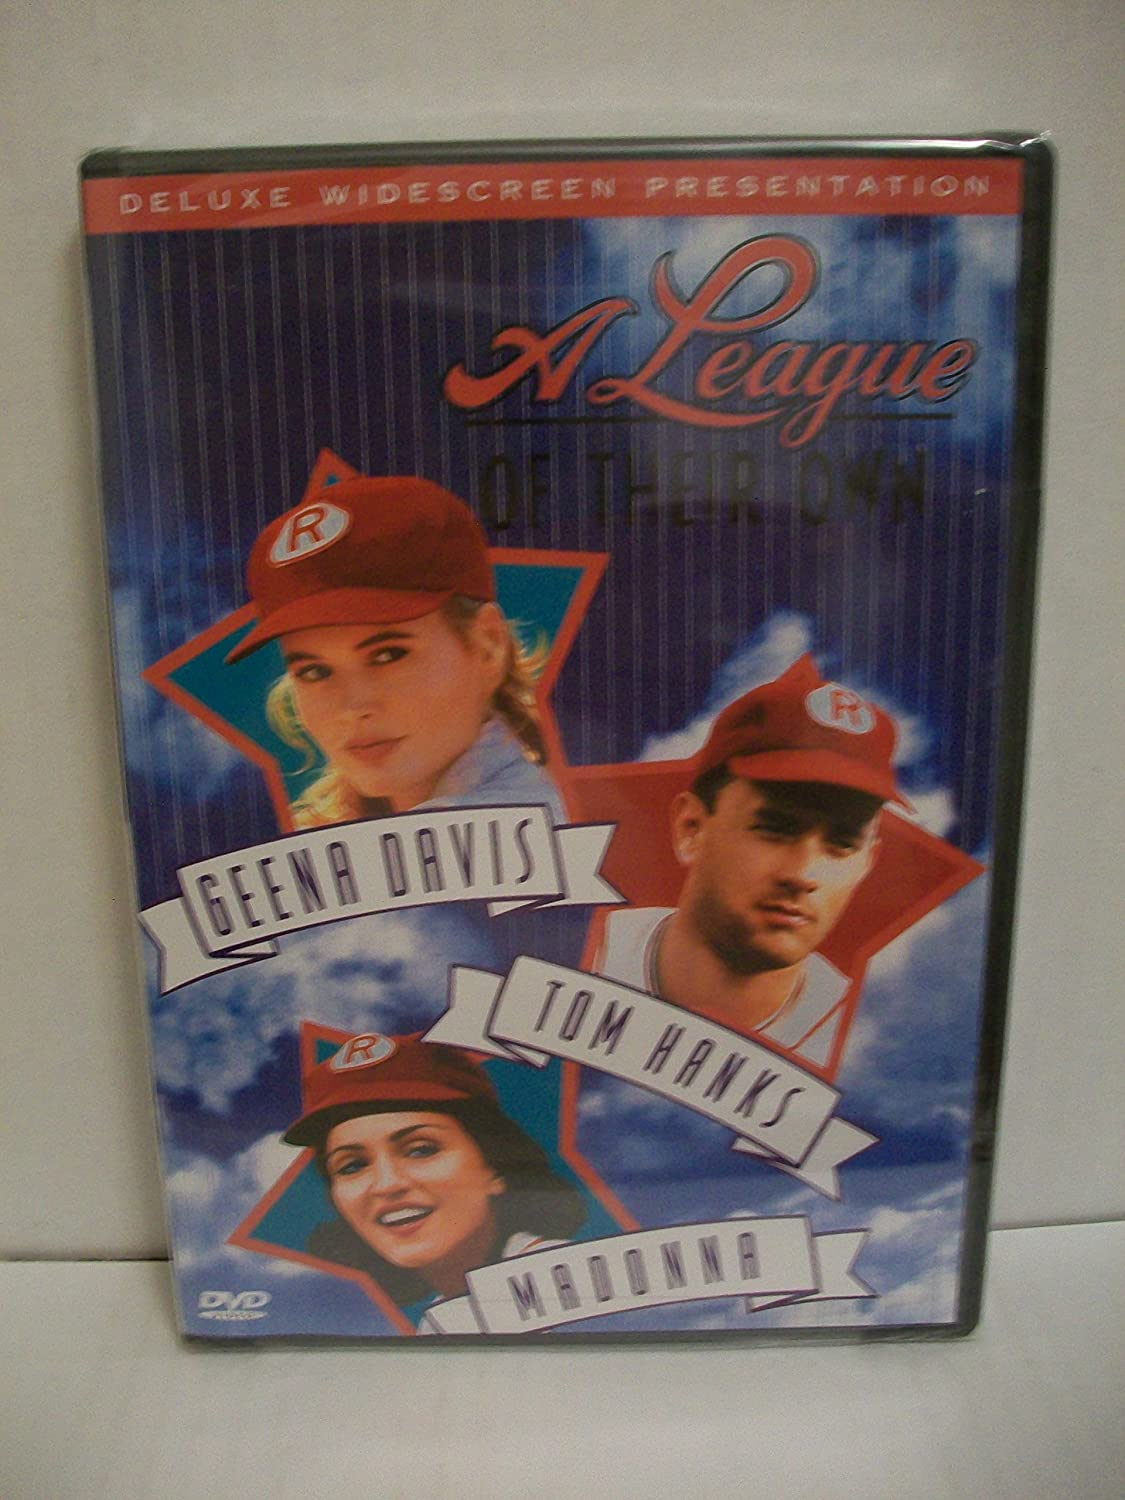 A League Of Their Own Tom Hanks, Geena Davis, Madonna, Lori Petty, Jon Lovitz, David Strathairn, Garry Marshall, Megan Cavanaugh, Rosie O'Donnell, Renee Coleman